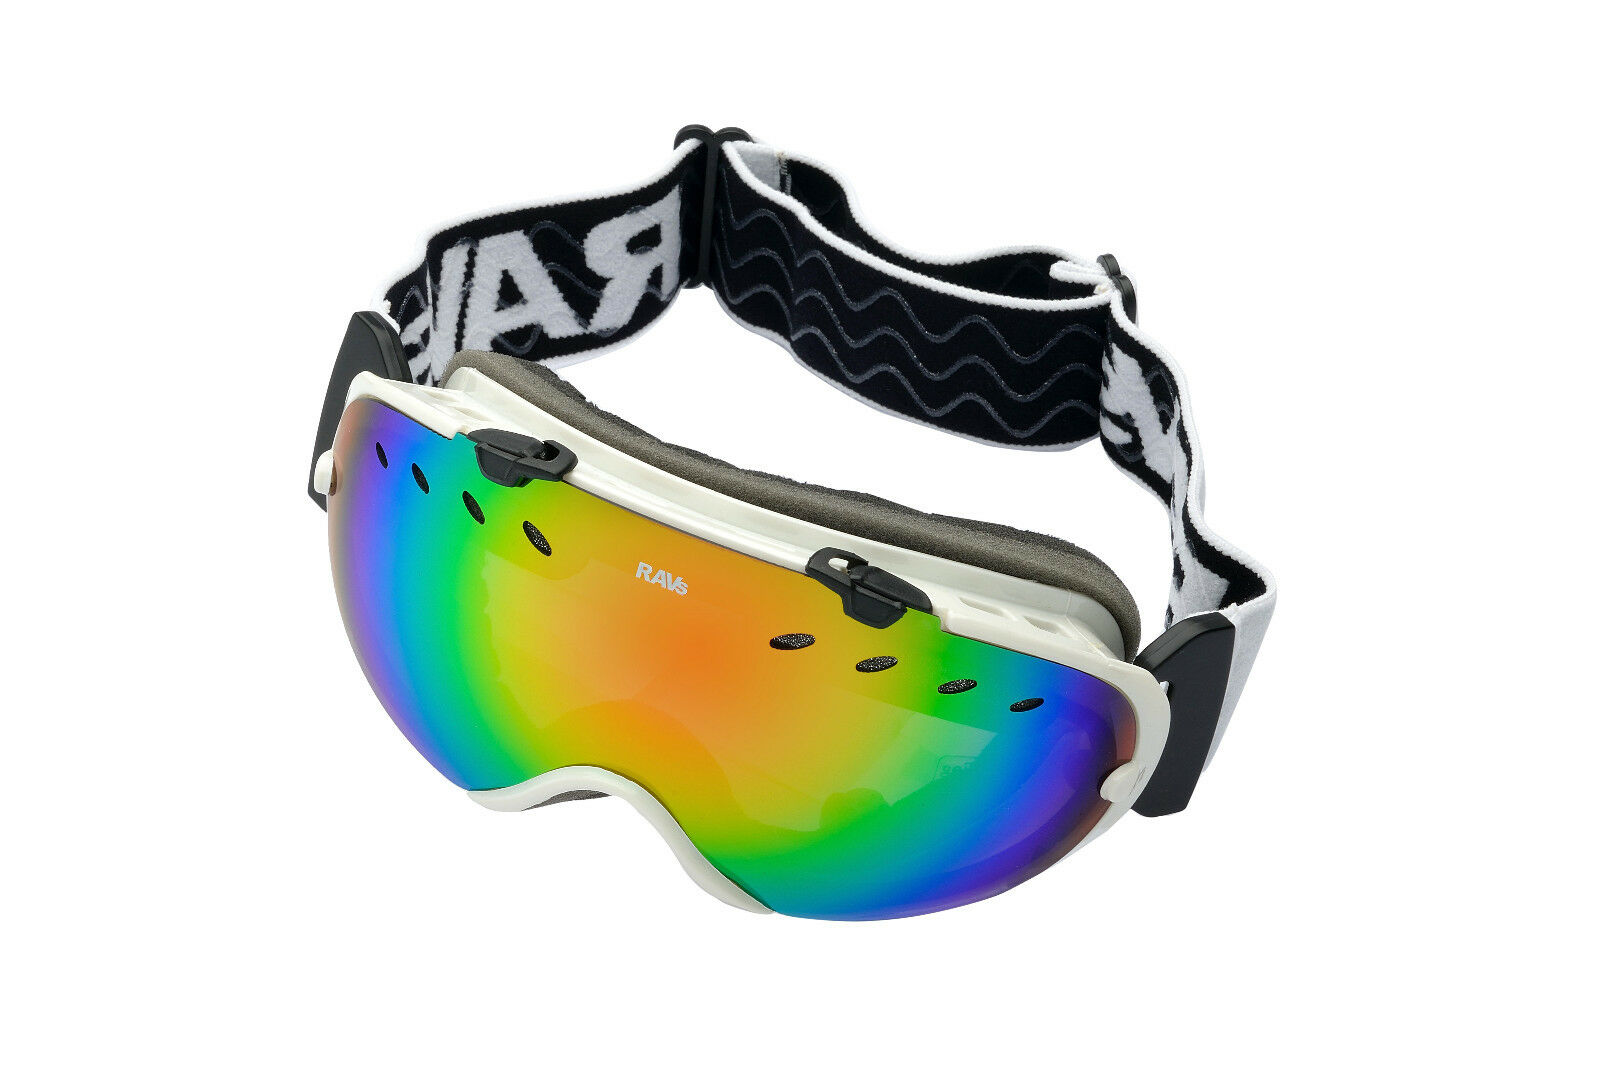 Ravs Unisex Ski Goggles - Snowboard Goggles for Alpine Sports Frameless